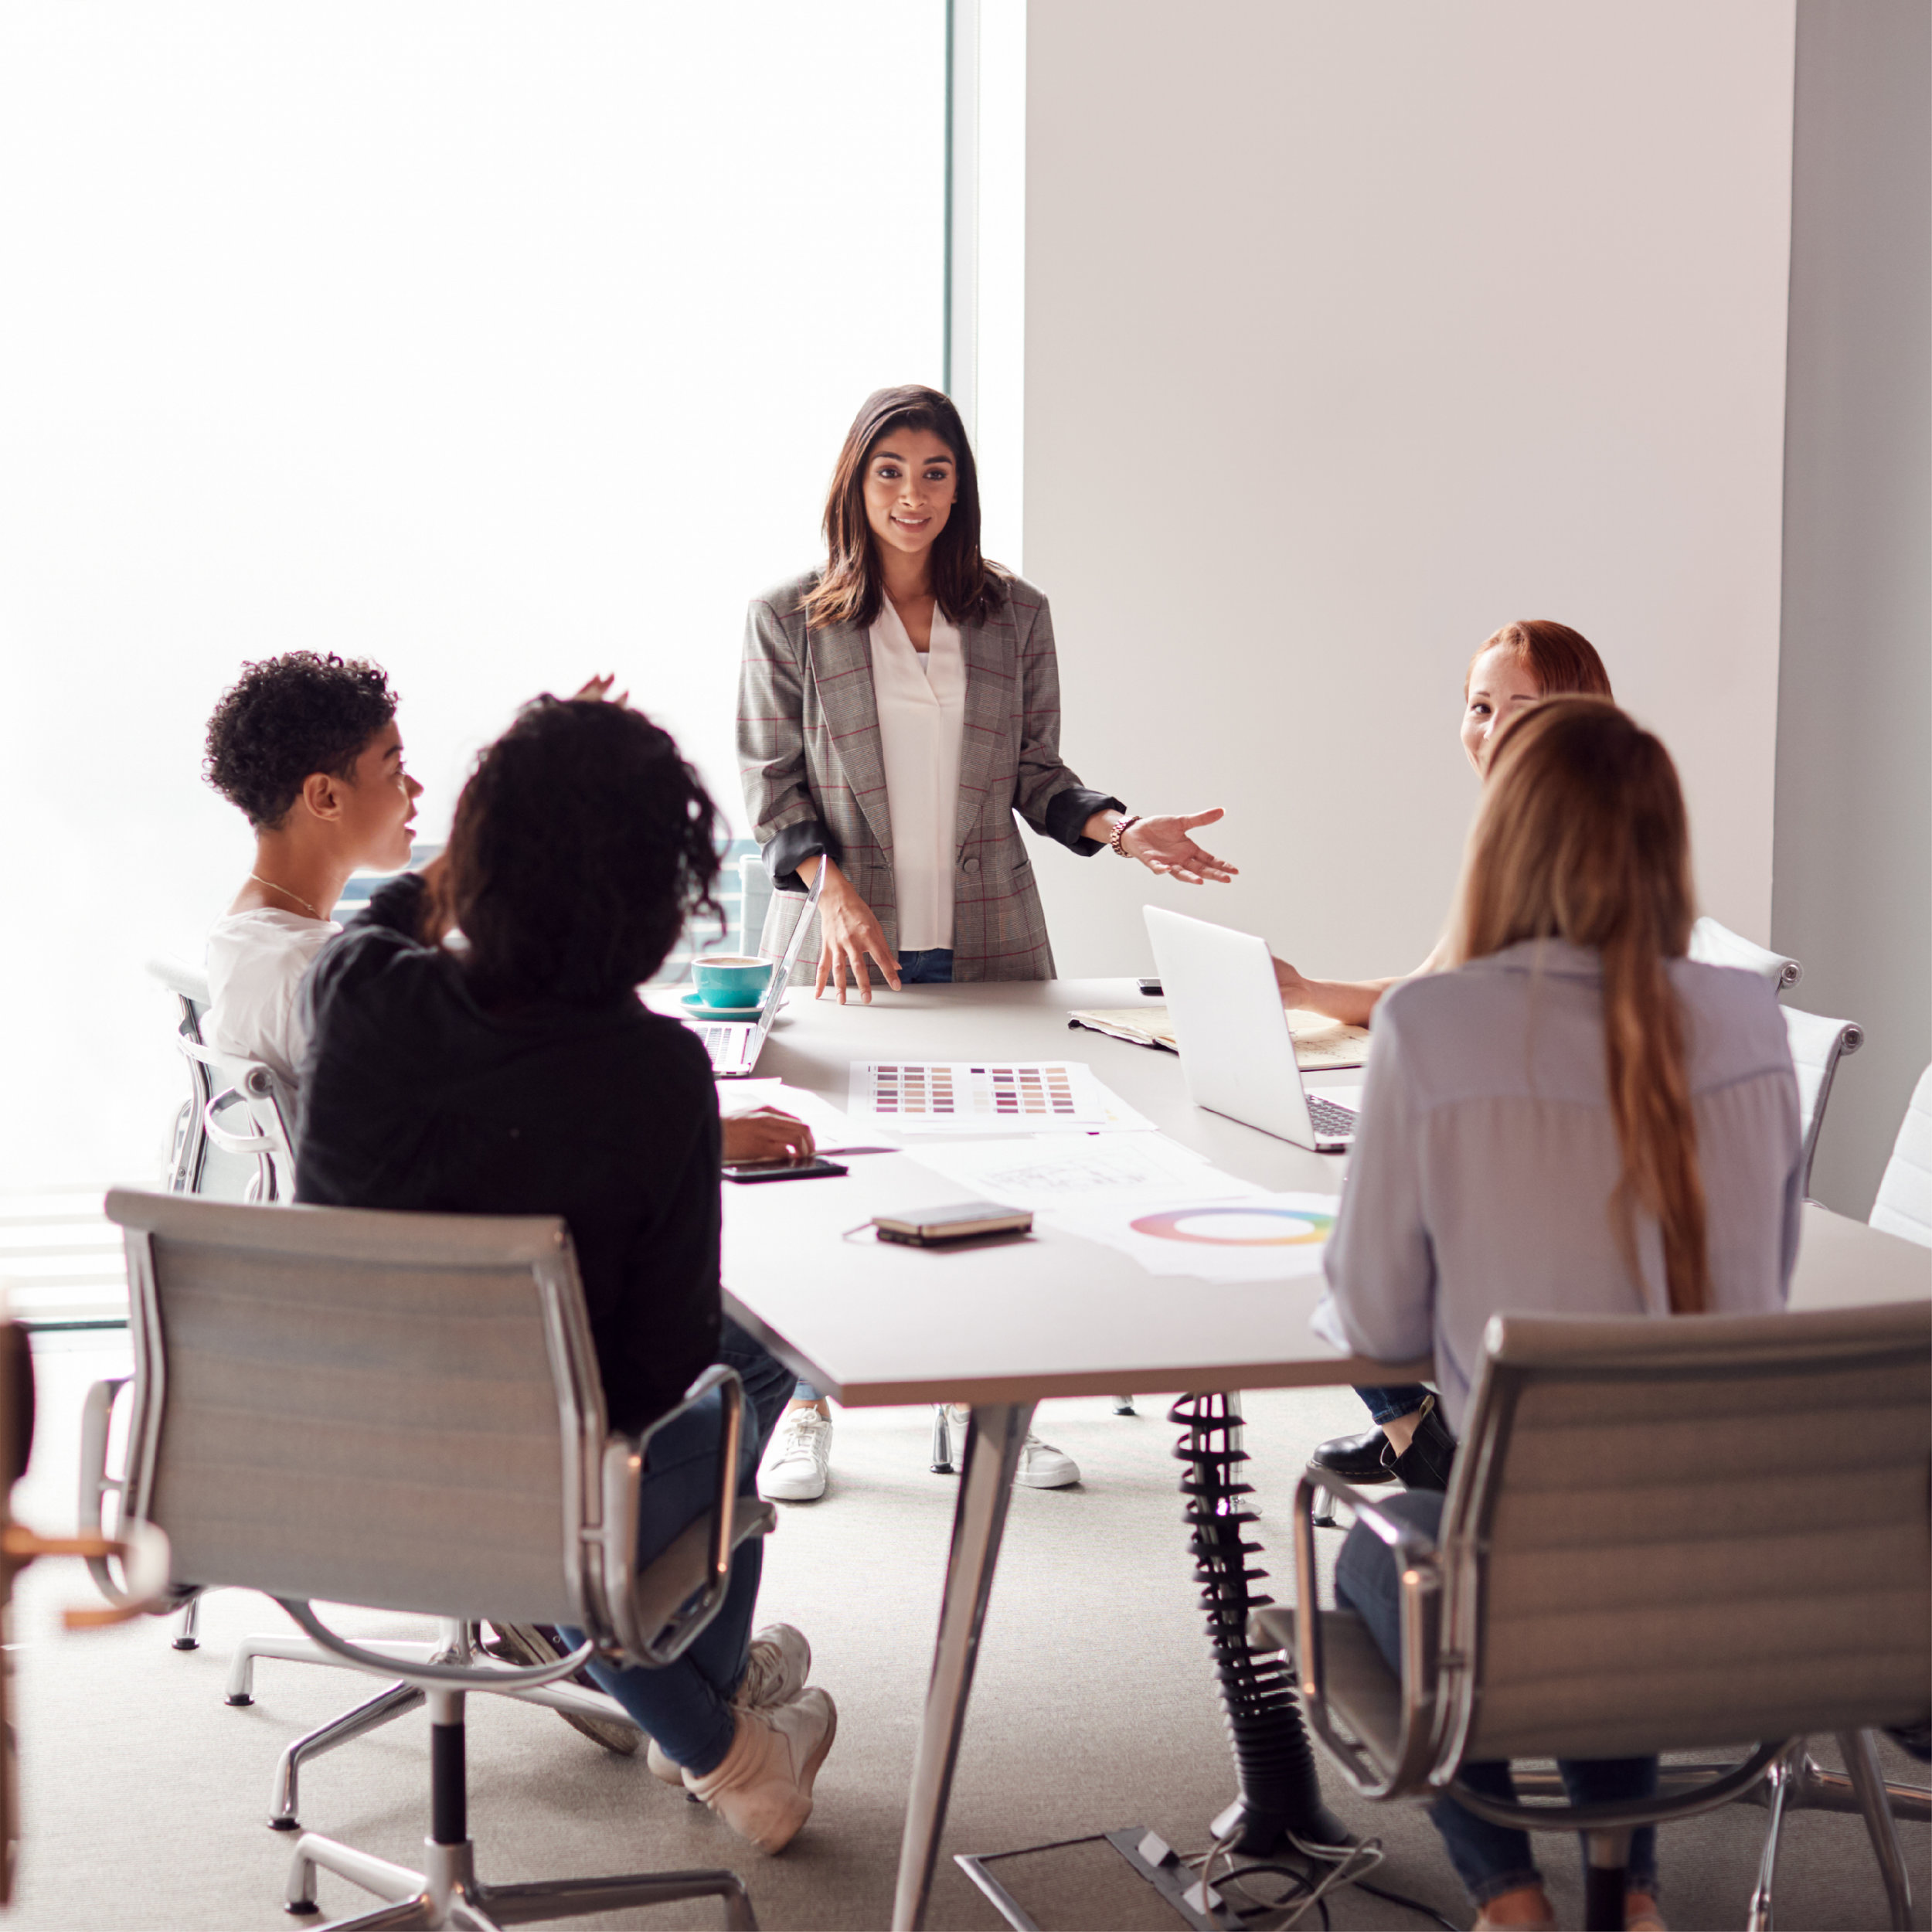 female-boss-gives-presentation-to-team-of-young-YU93KHX.jpg